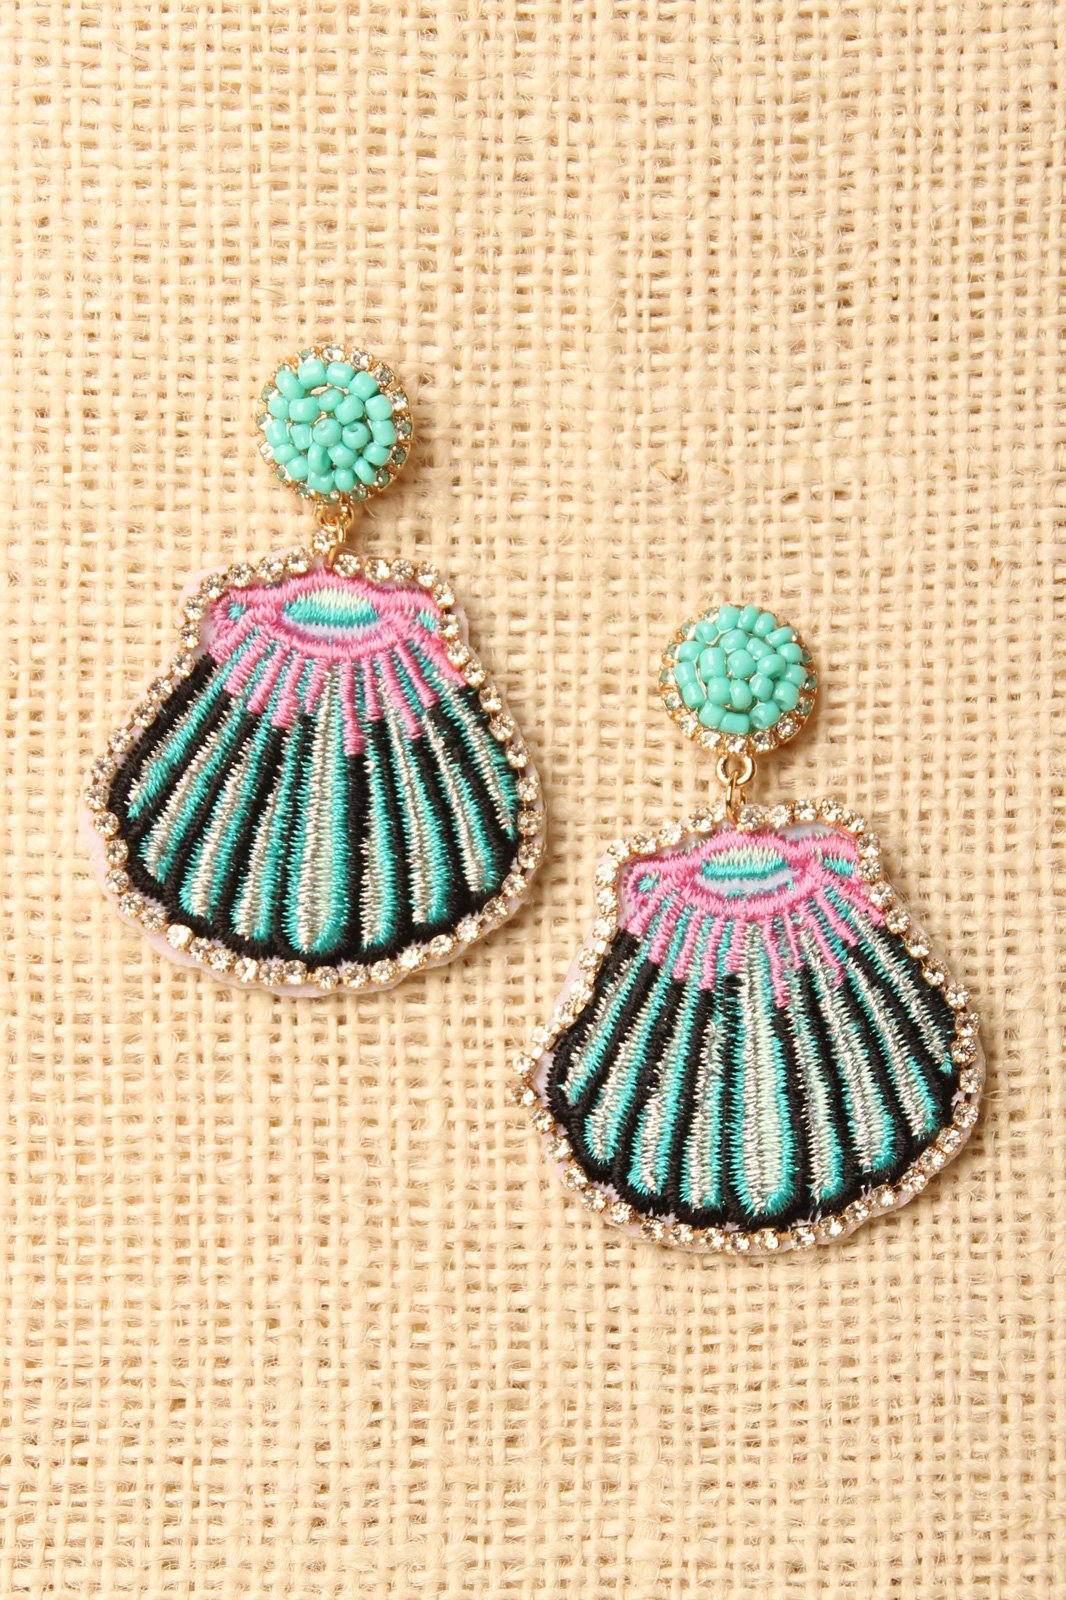 9a6dec136 Rhinestone Embroidered Seashell Earrings Online Boutiques, Girl Closet,  Rich Girl, Drop Earrings,